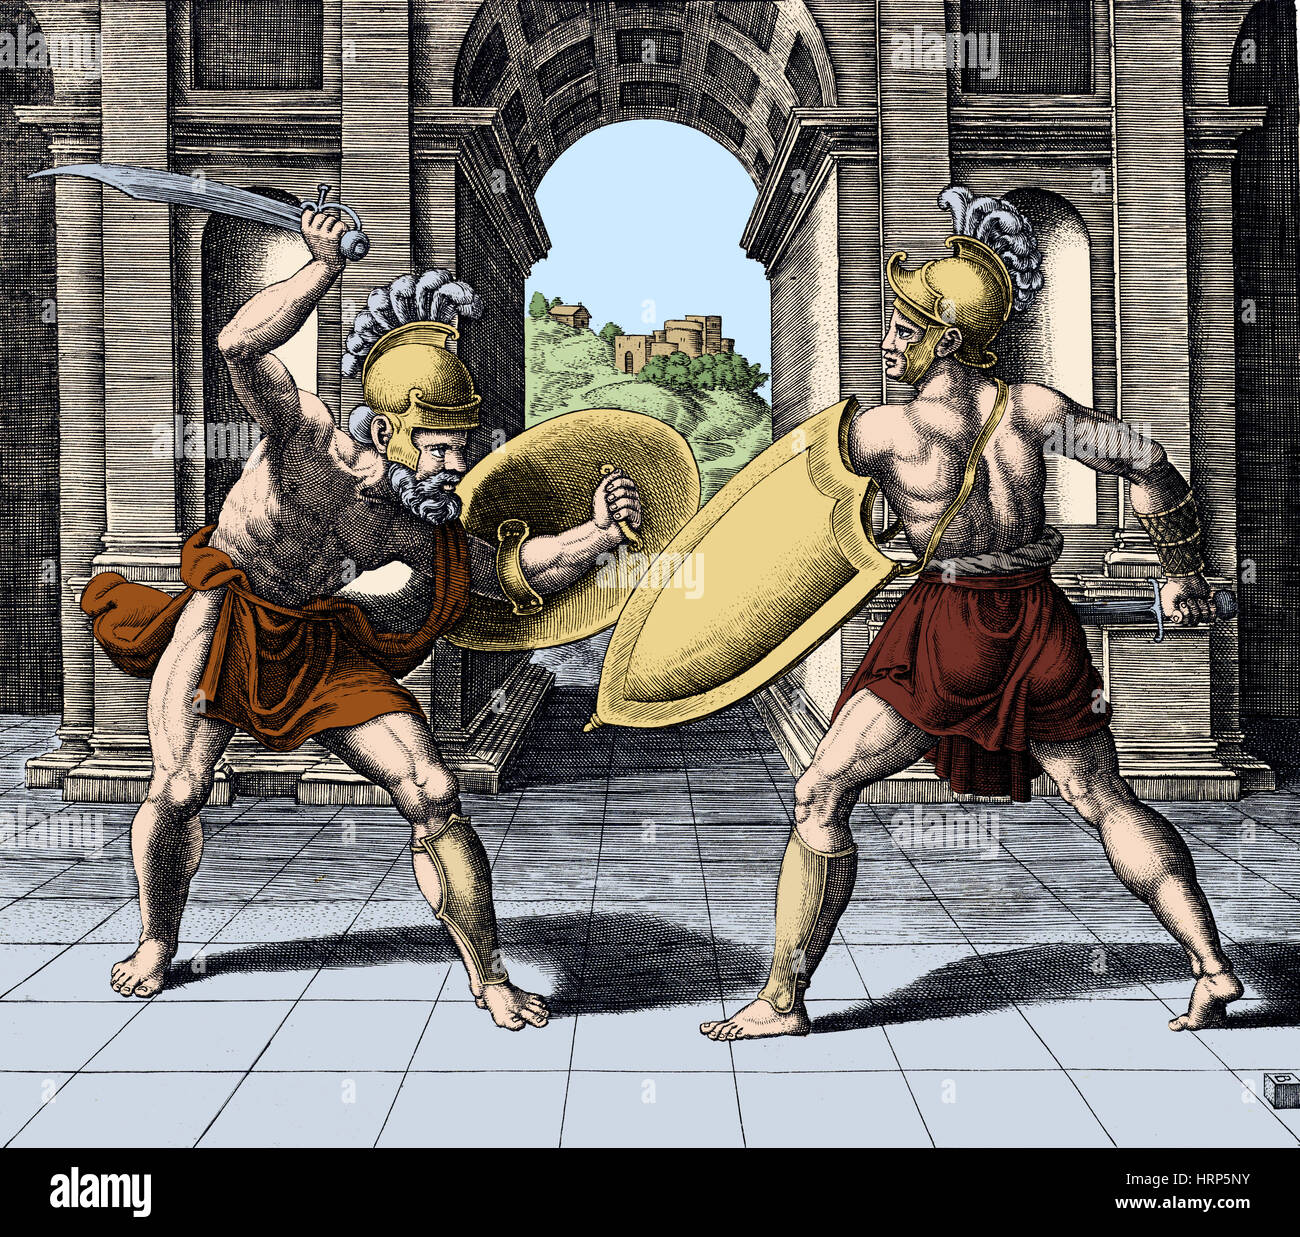 Bread and Circus, Gladiators, Ancient Rome - Stock Image